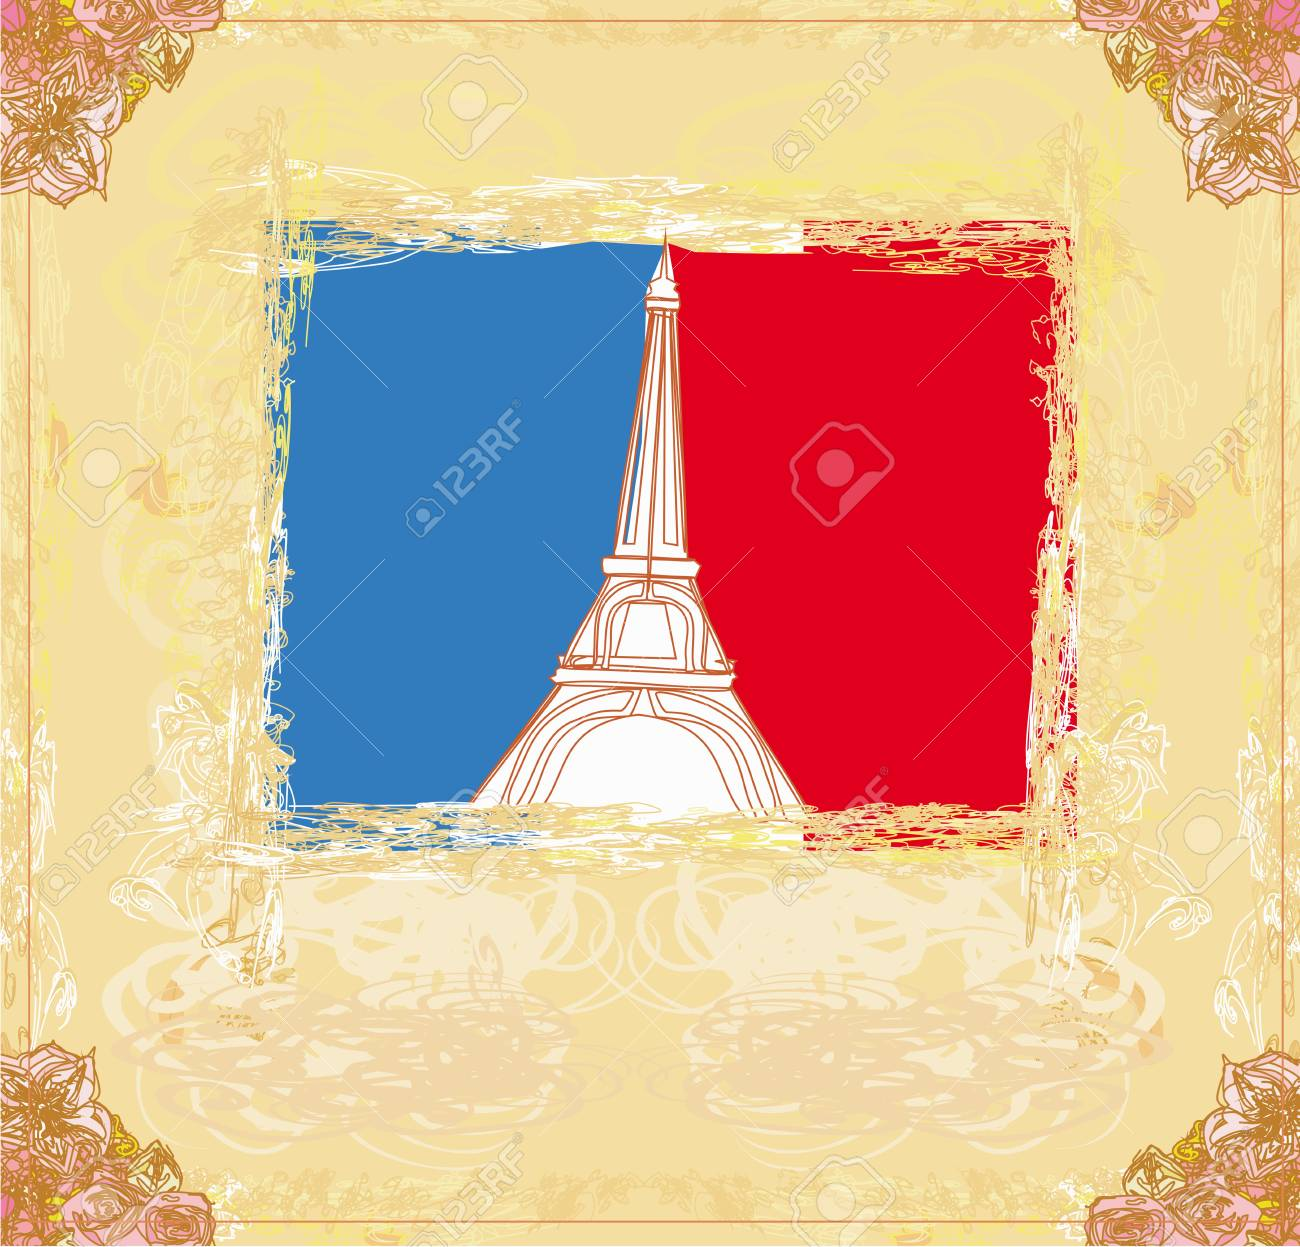 Eiffel tower artistic background. Stock Vector - 17531043